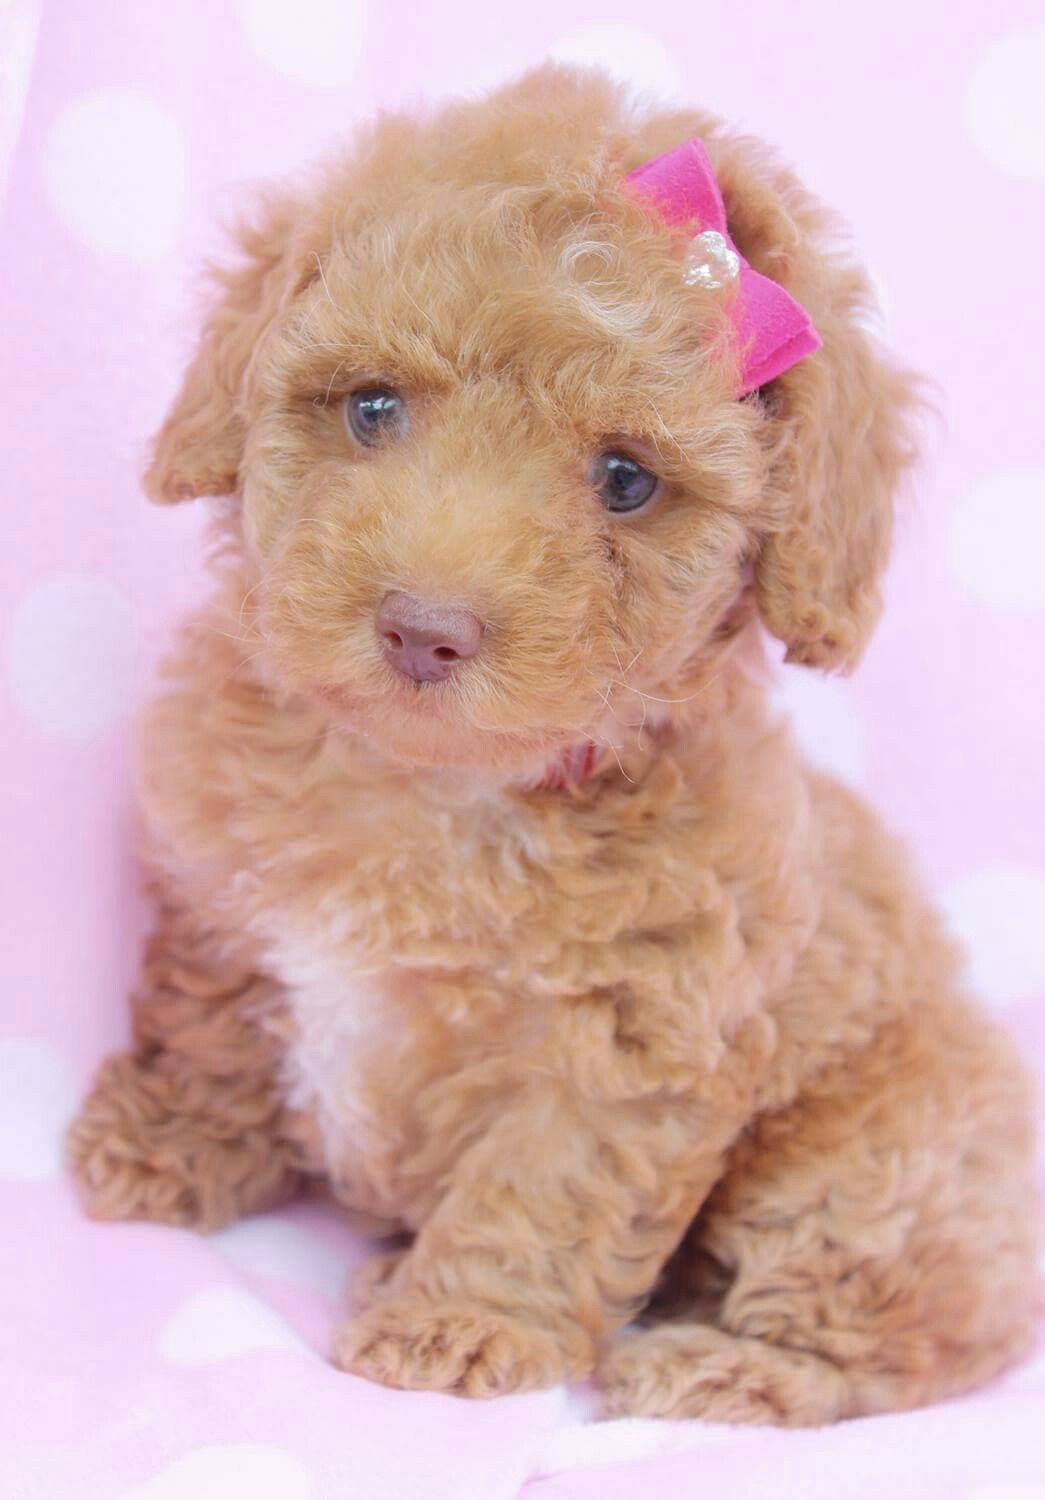 Pin By Kathy On Dogs My Loyal Loves Poodle Puppies For Sale